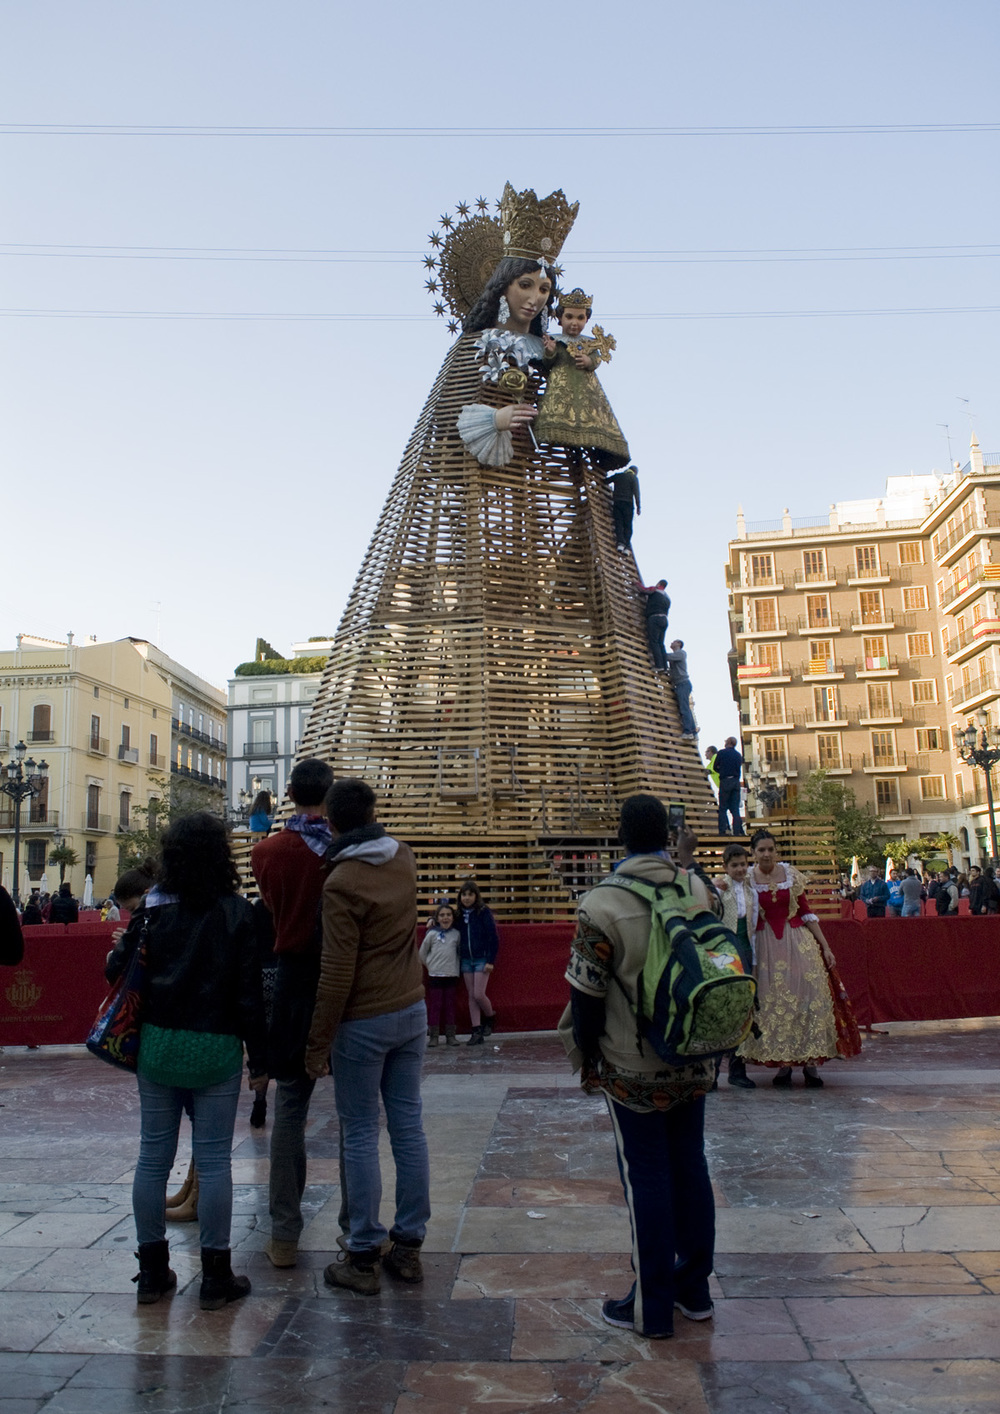 A great wooden structure depicting the Virgin Mary holding baby Jesus is located in the city's oldest square. It's a major focal point of the Fallas festivities, as for a couple of days falleras and falleros process from their neighborhoods to the square with bouquets of flowers. The flowers are placed throughout the wooden structure, creating a beautiful dress.